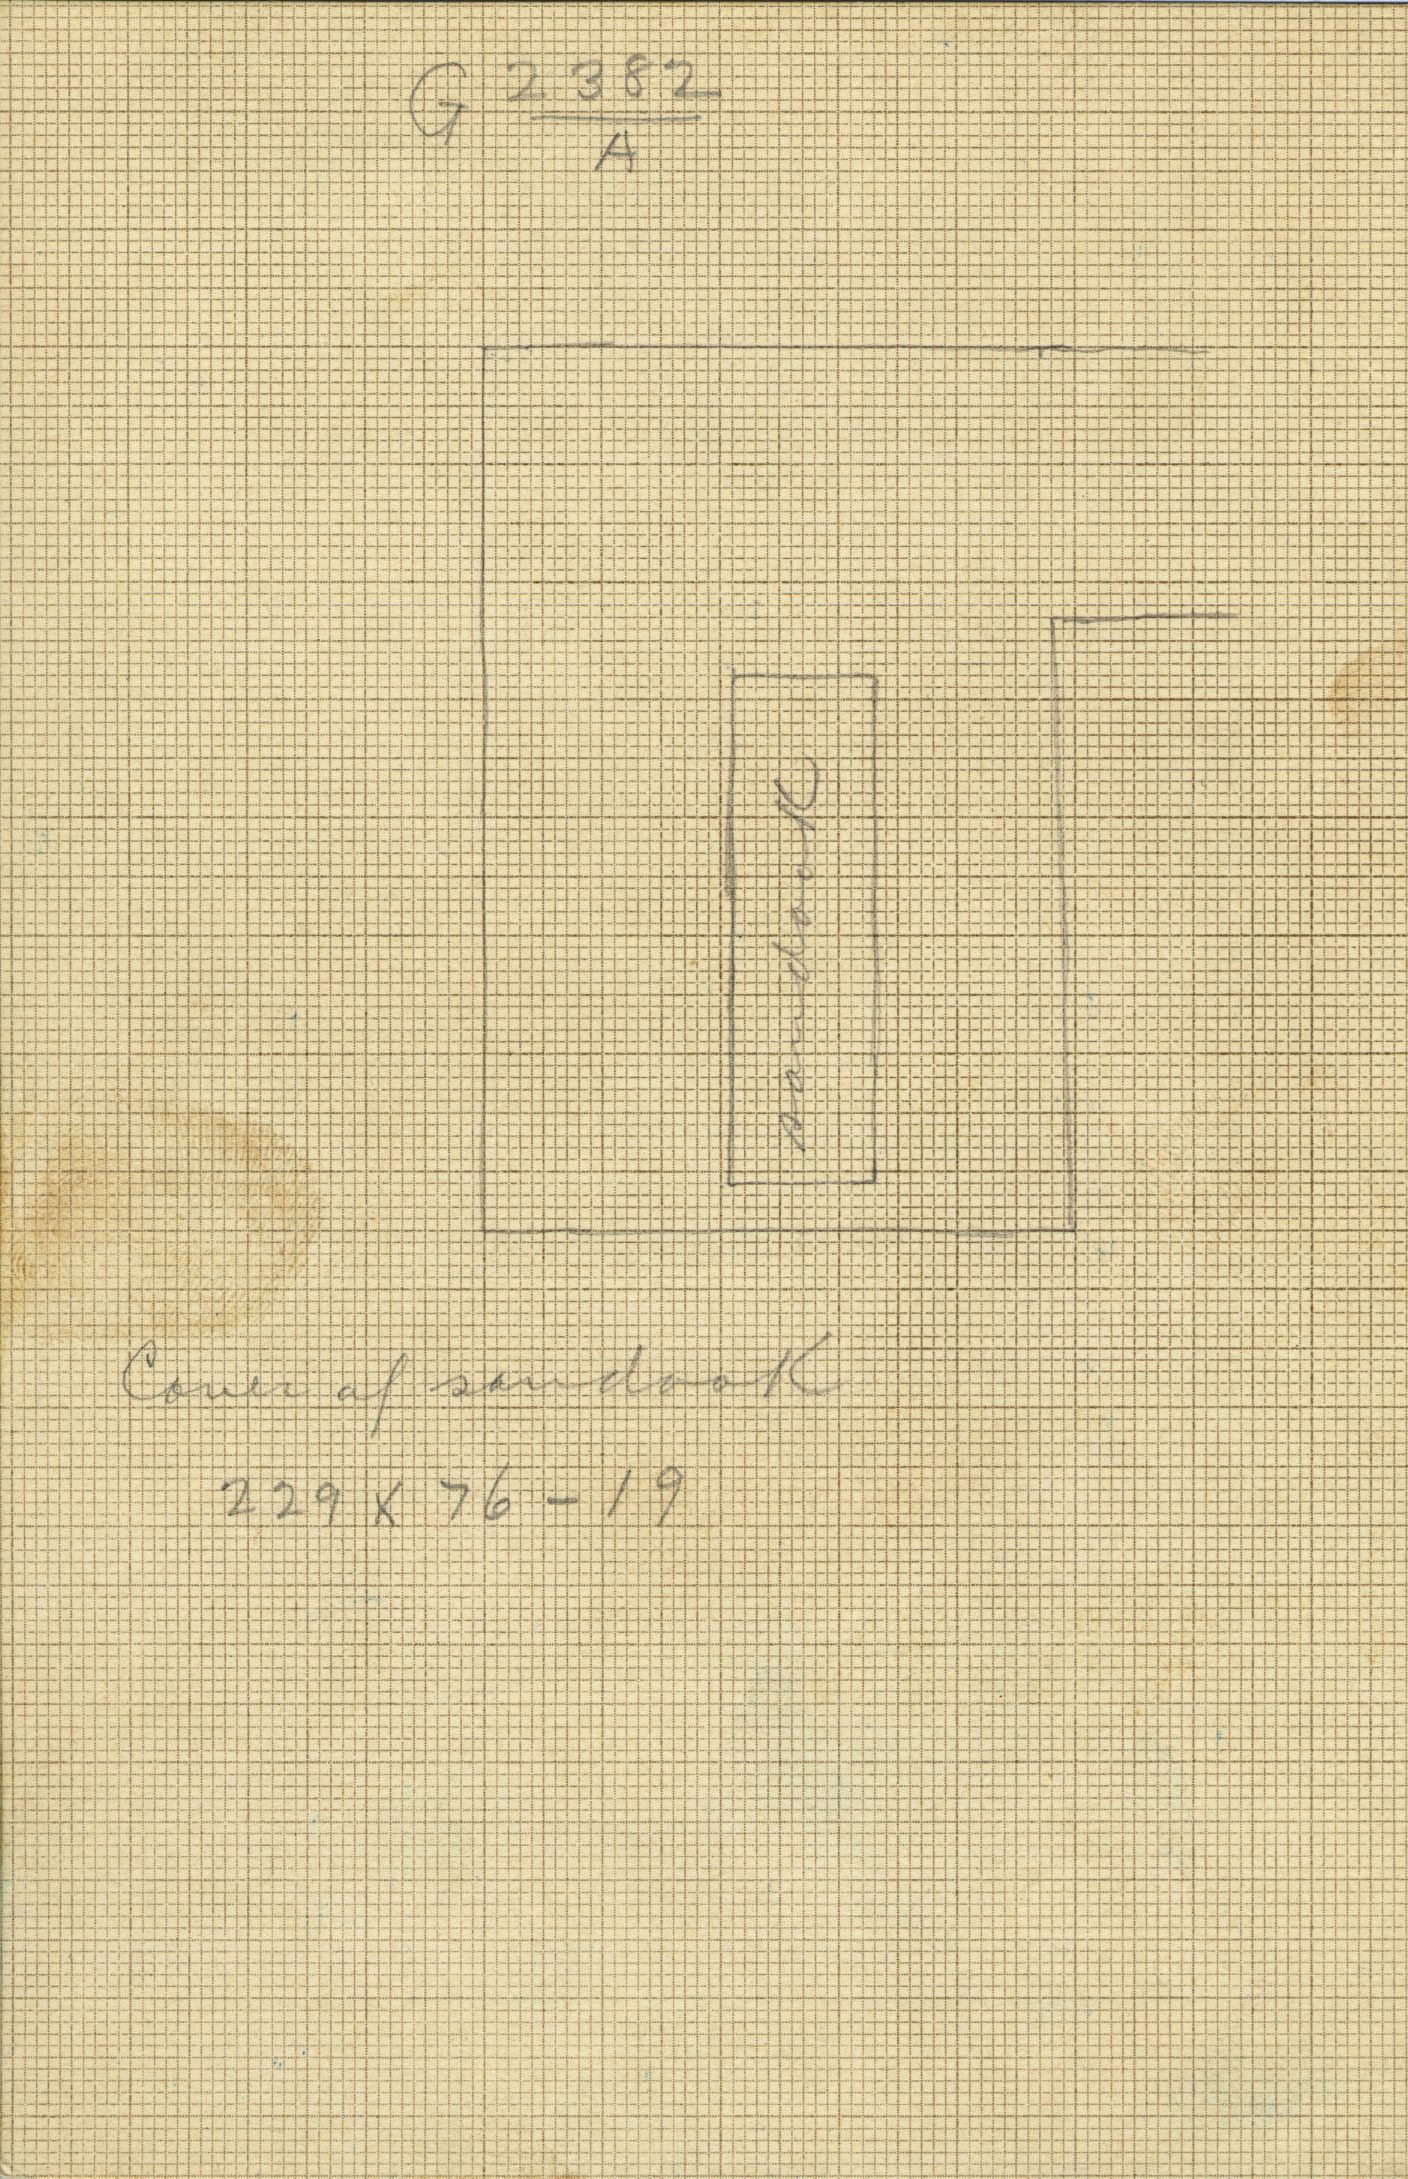 Maps and plans: G 2382, Shaft A